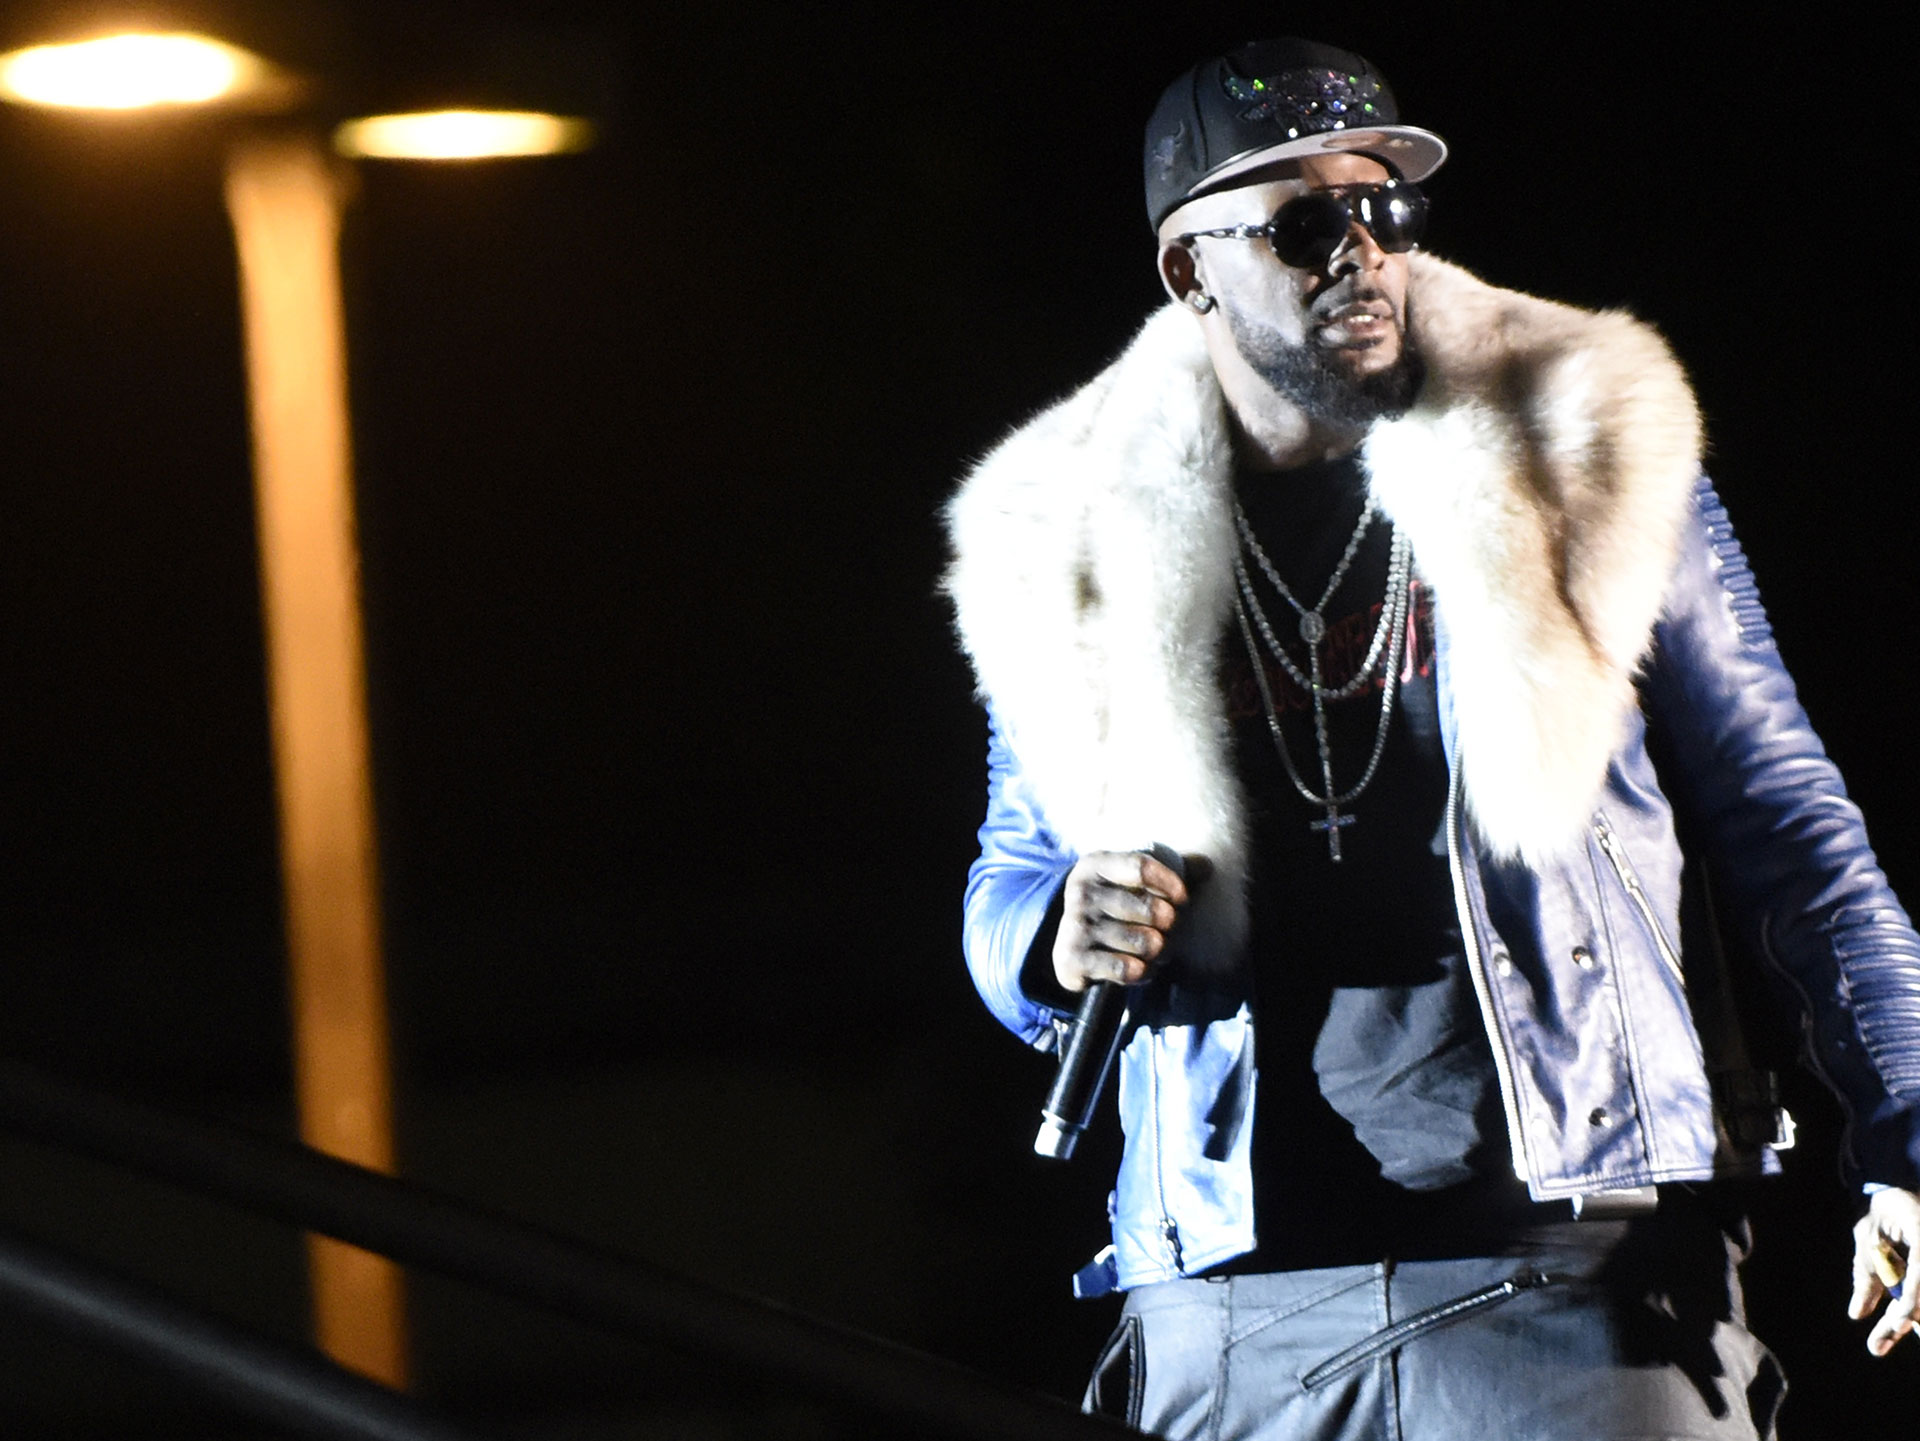 R Kelly Denies Explosive Claims He Is Housing Women Against Their Will